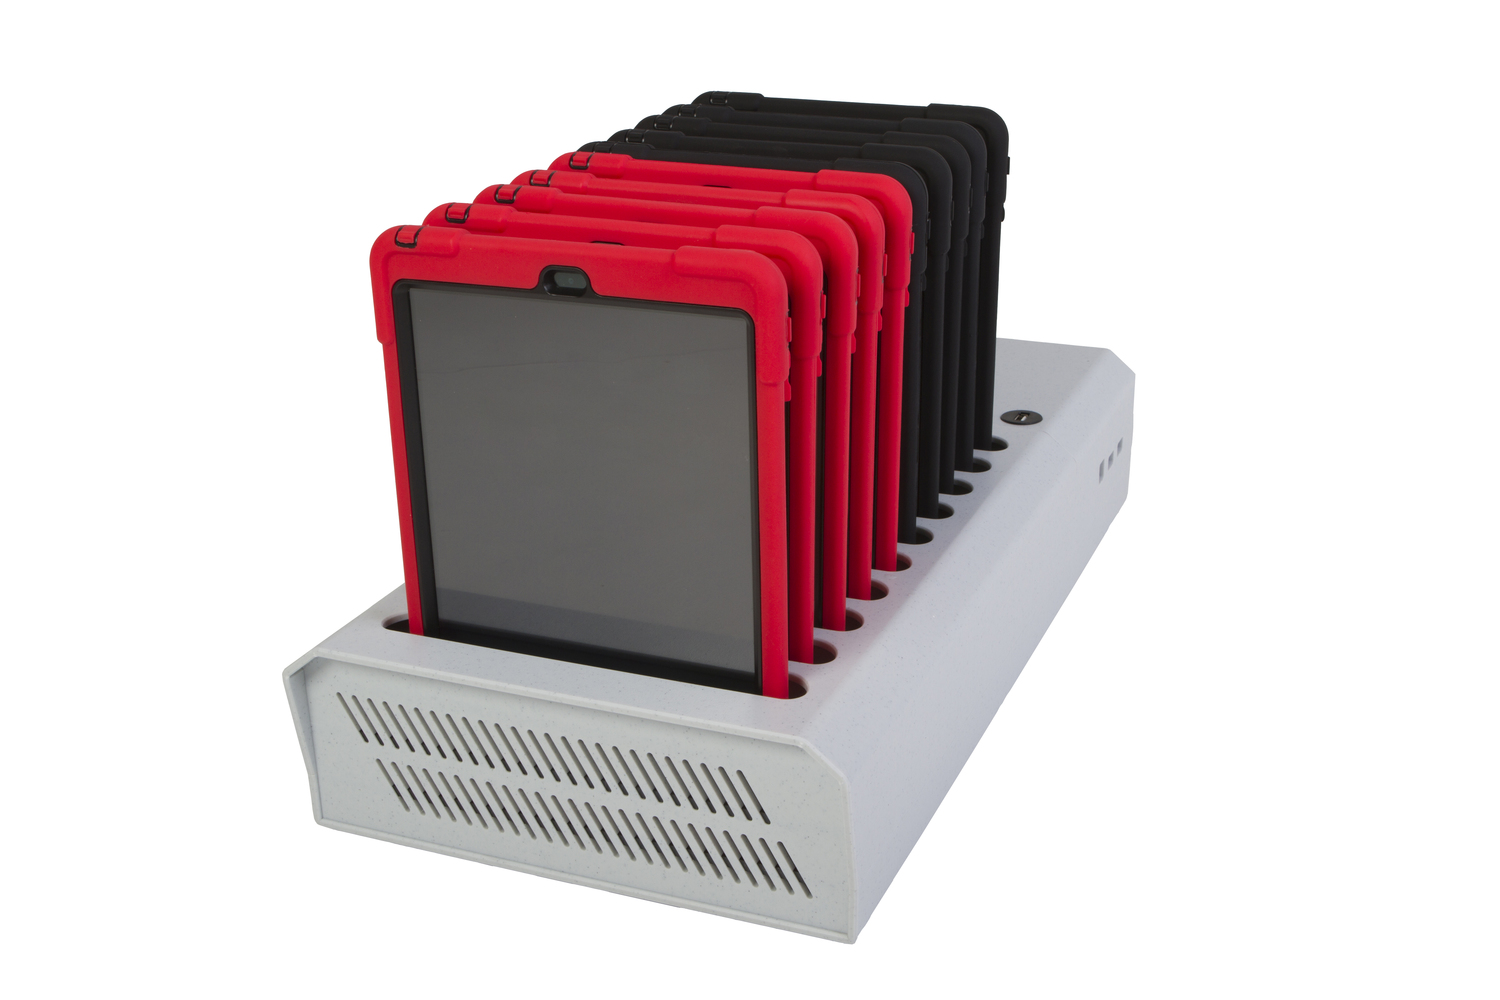 DL10 iPad Docking Station